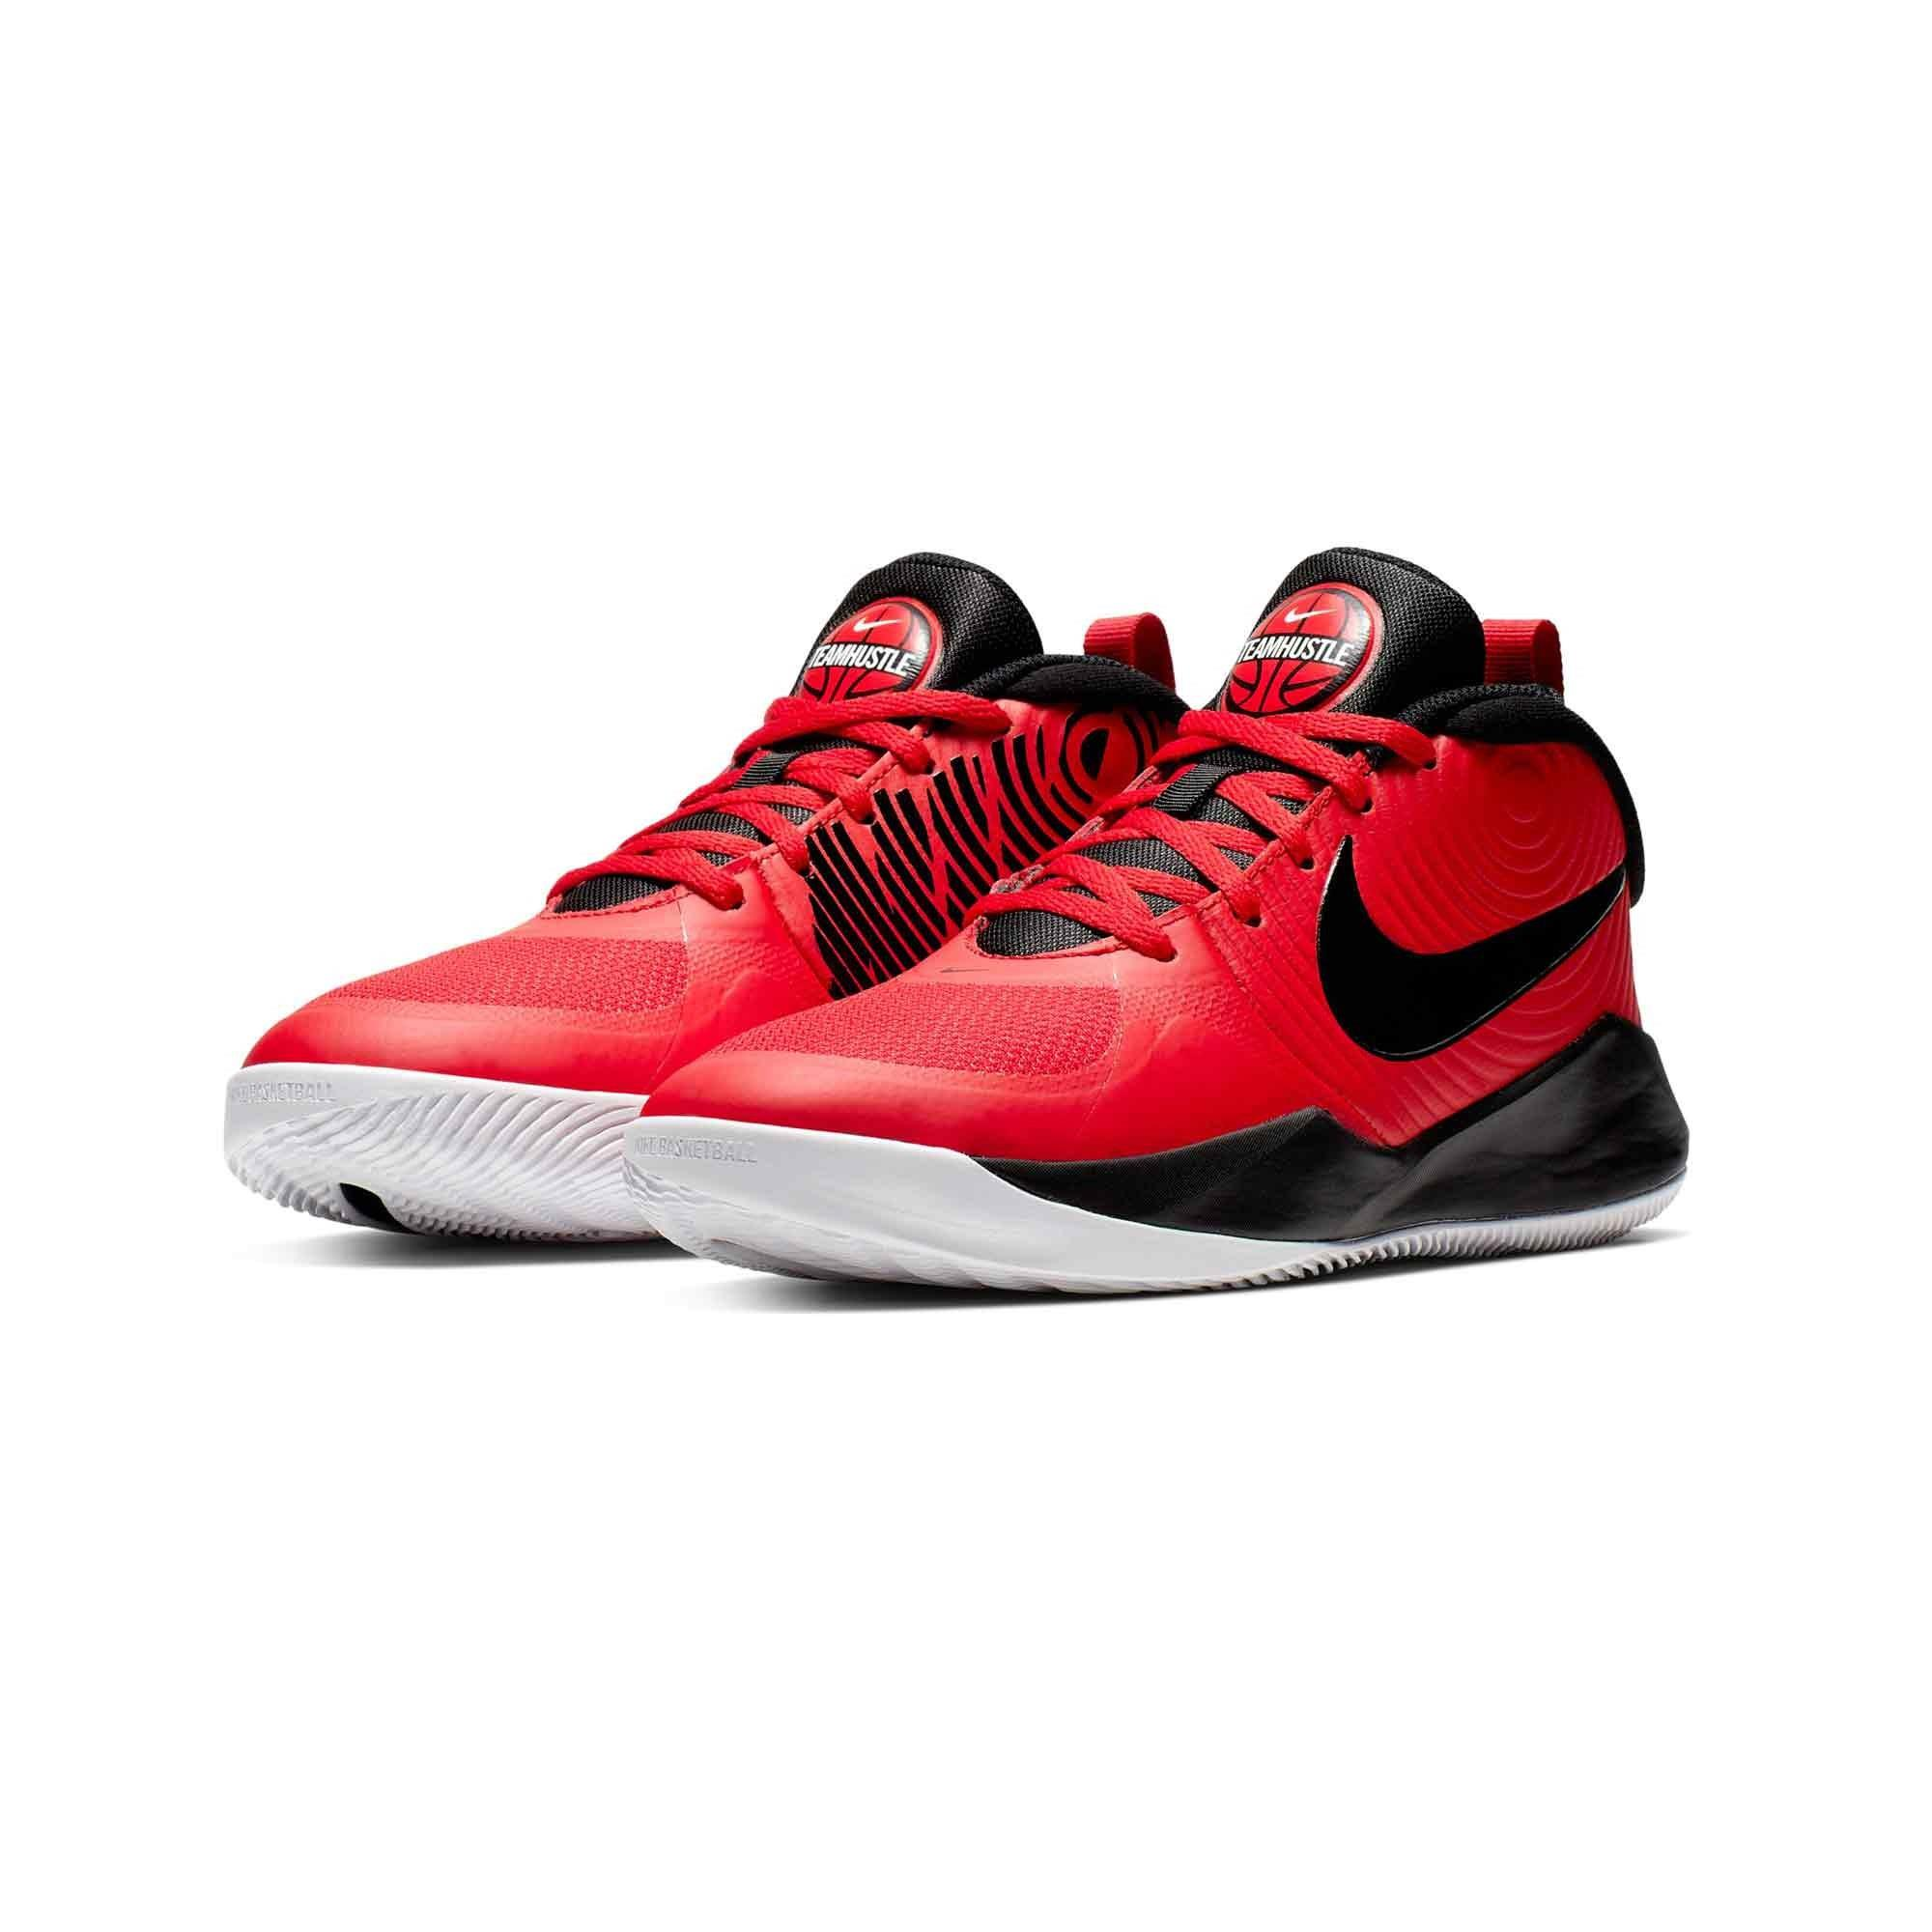 Nike AQ4224-600 TEAM HUSTLE BASKETBOL AYAKKABISI